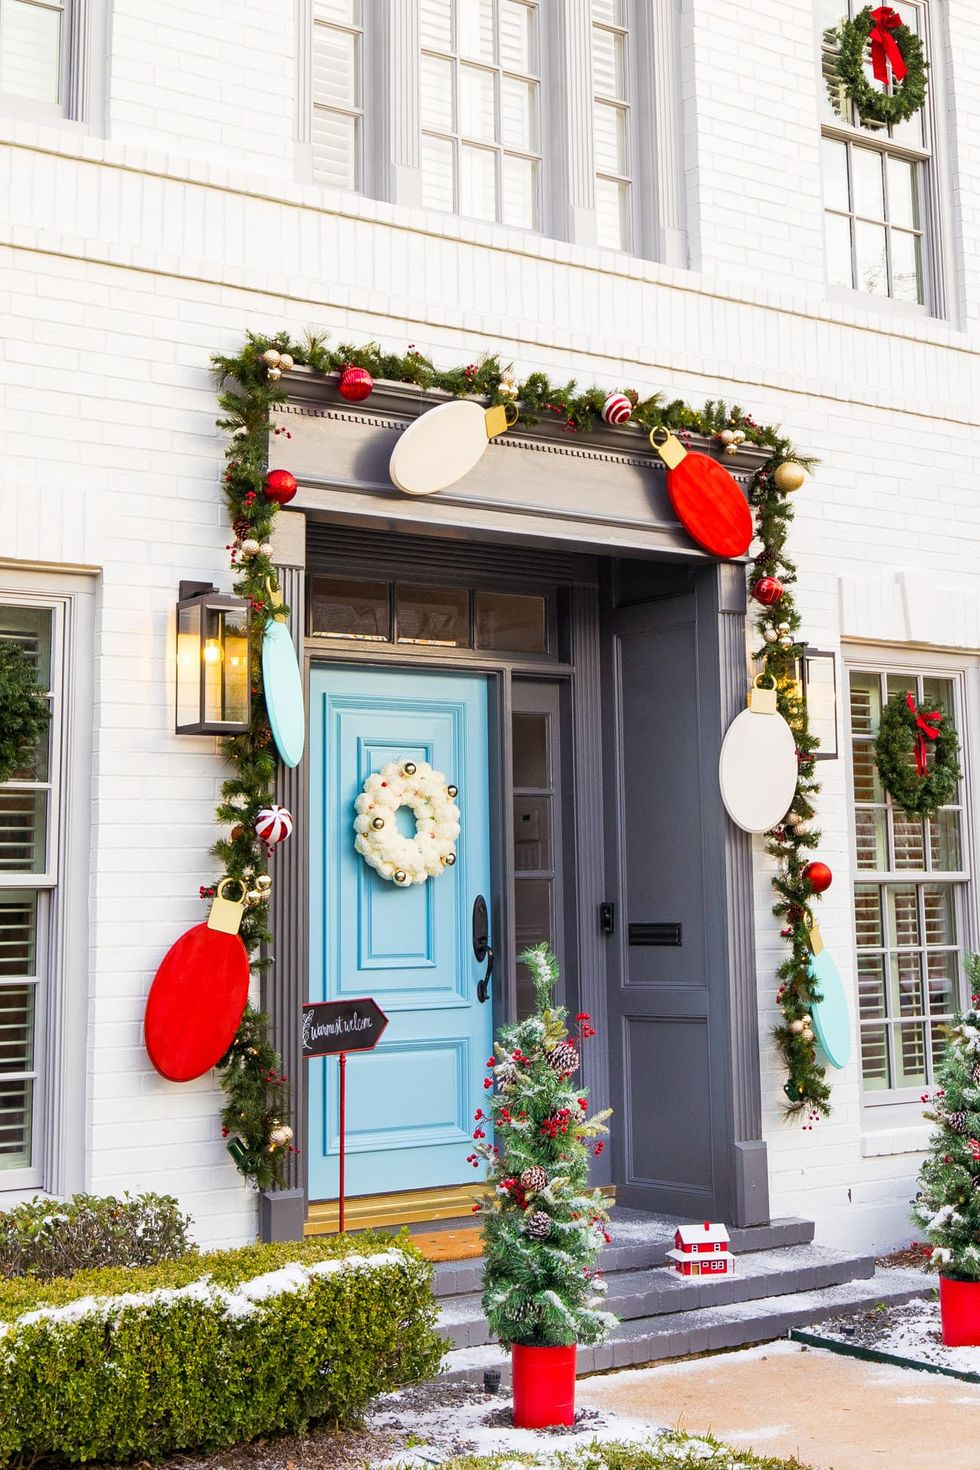 Newest Christmas Door Decoration Ideas You Must Try Right Now13